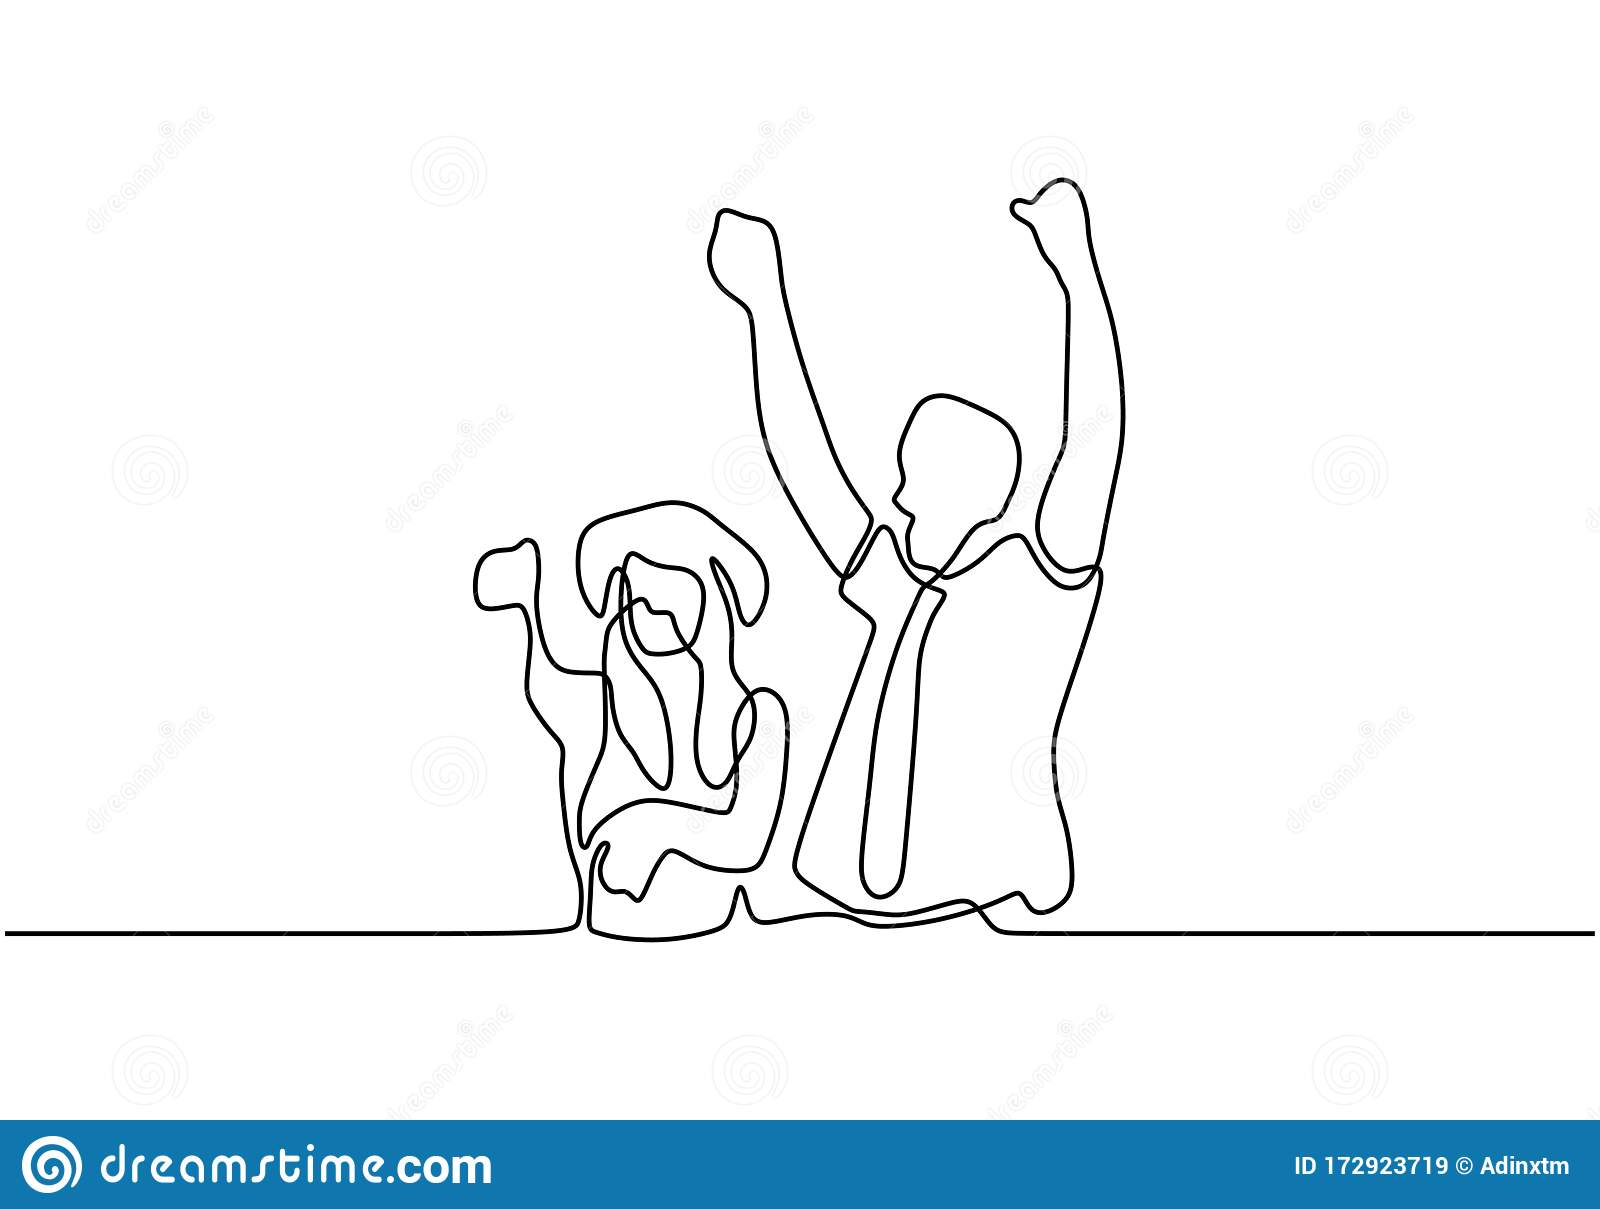 One Line Drawing Happy Couple In Love Romantic Continuous Hand Drawn Sketch People Minimalist And Simplicity Design Contour Stock Illustration Illustration Of Romance Kiss 172923719